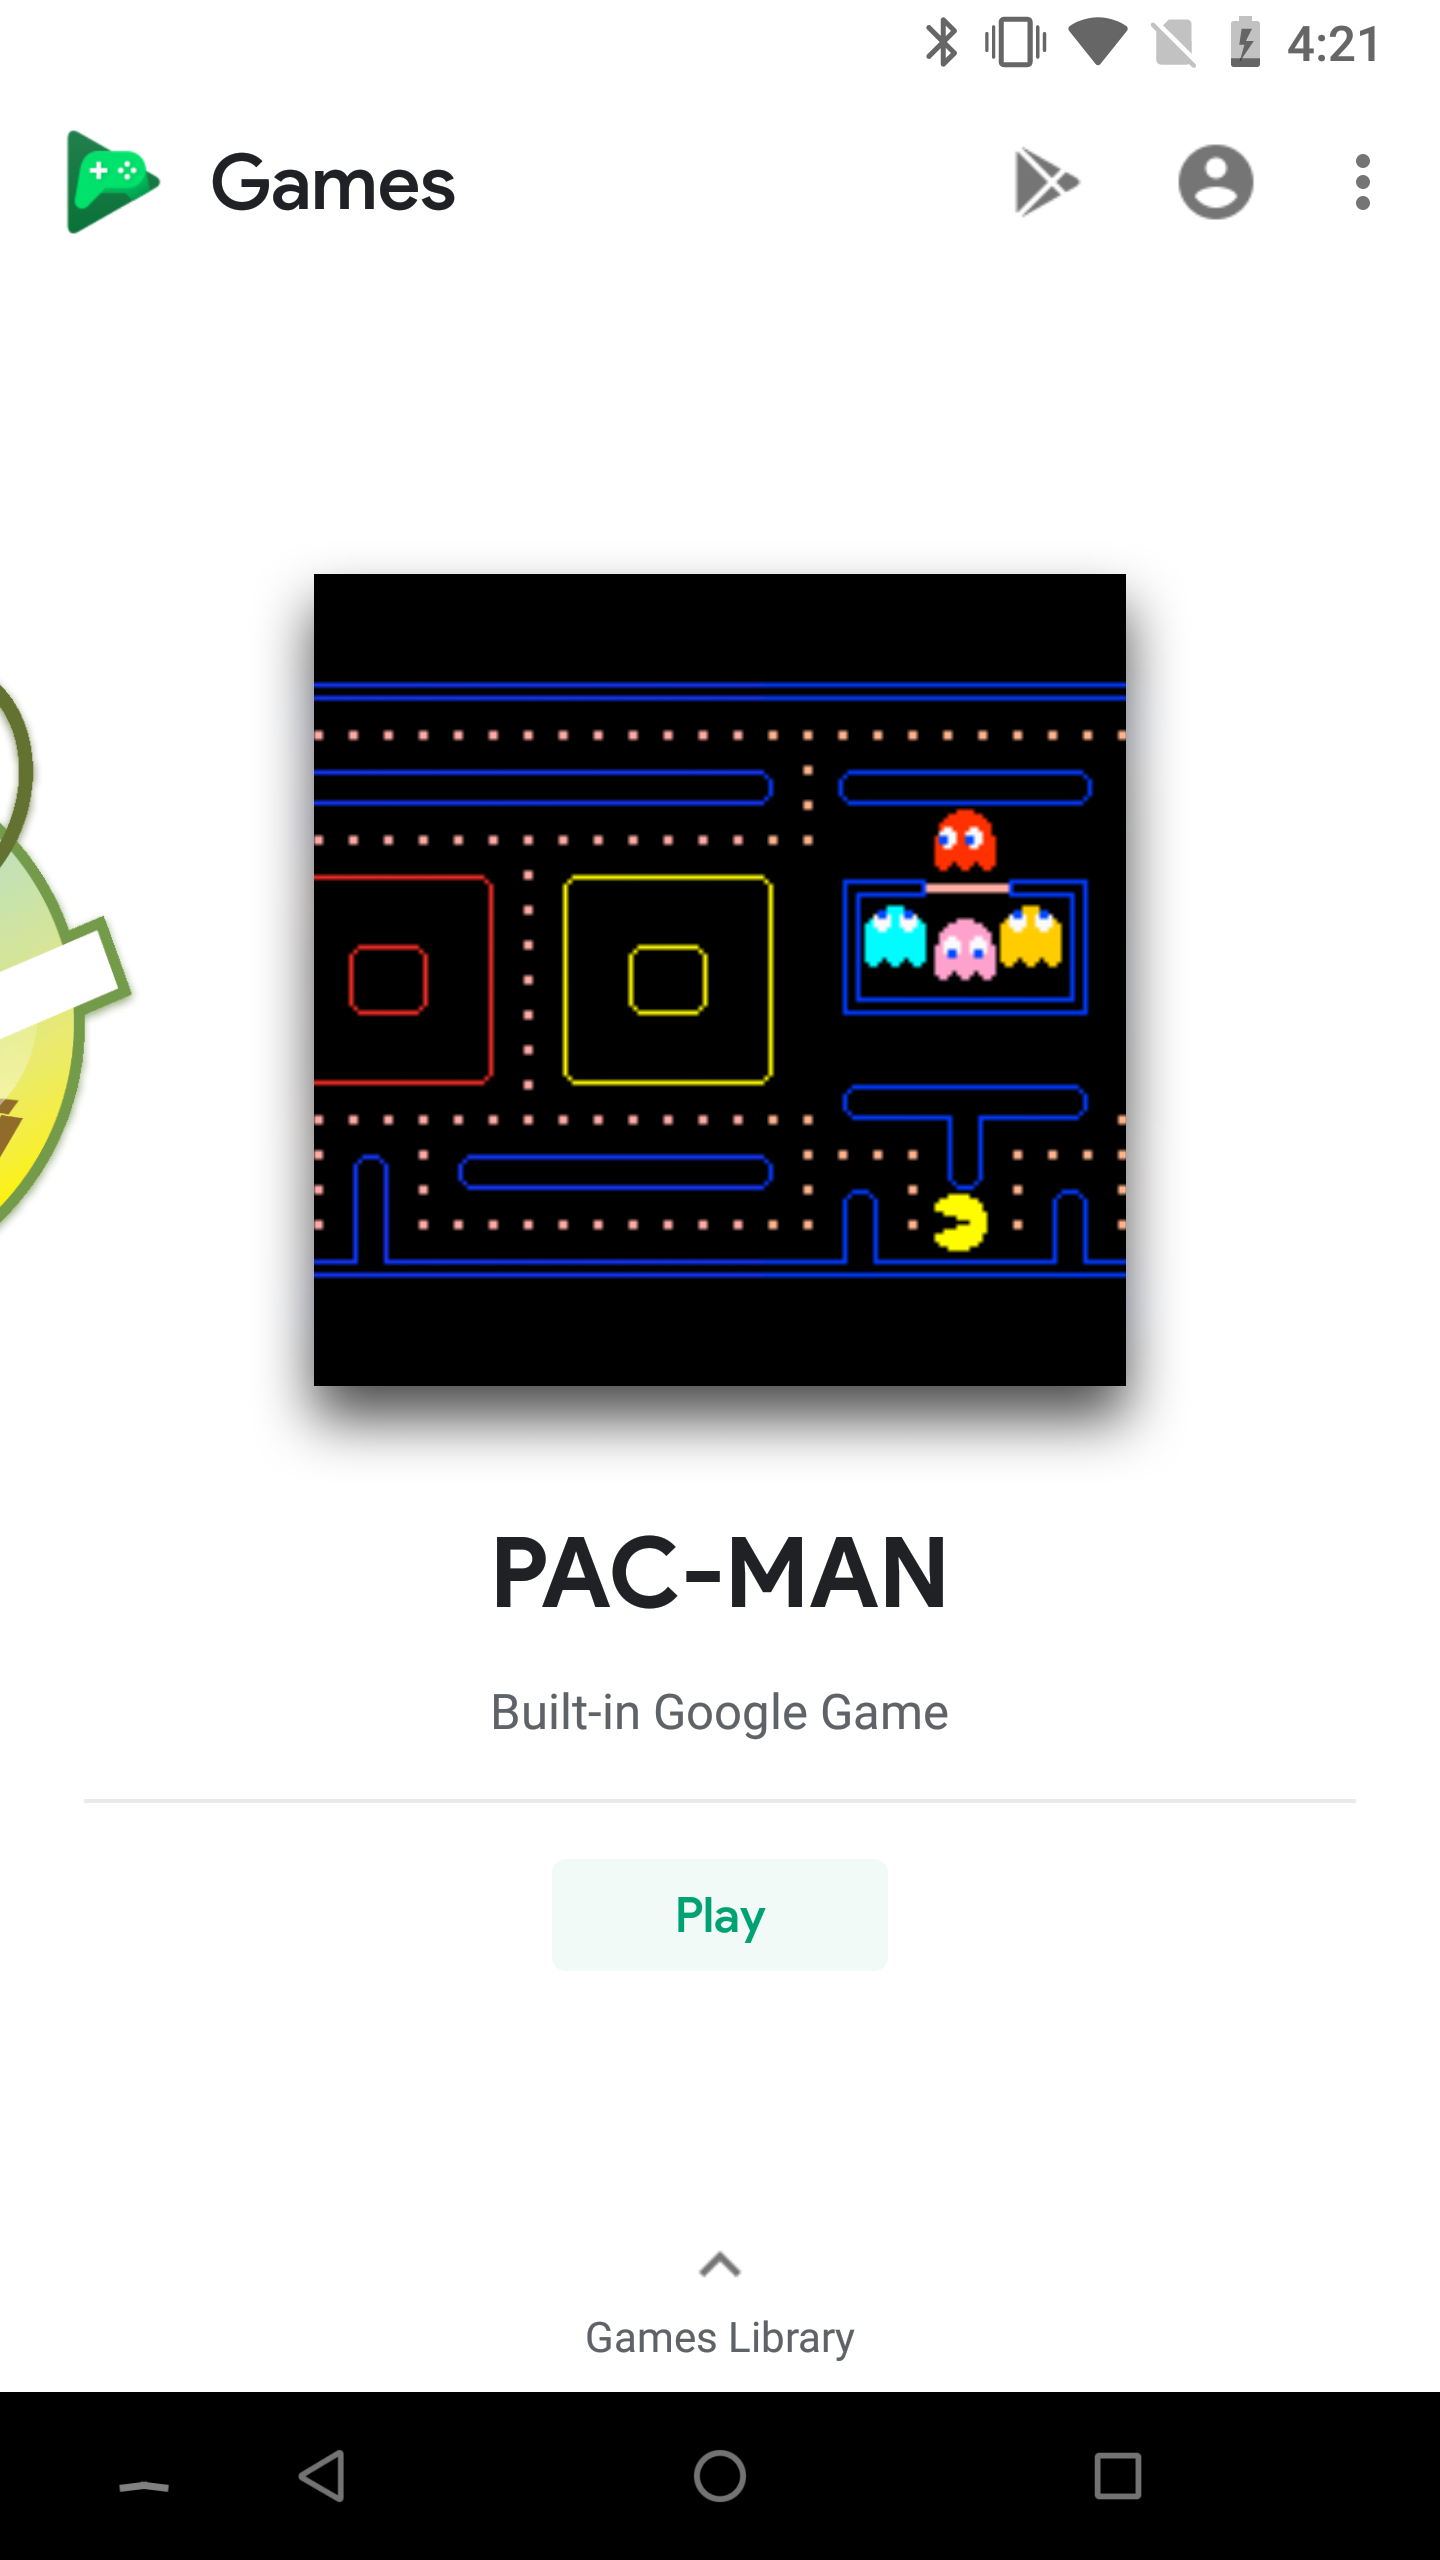 three mini games are included in this update solitaire cricket and pac man each is a convenient way to waste time if you dont have any other games